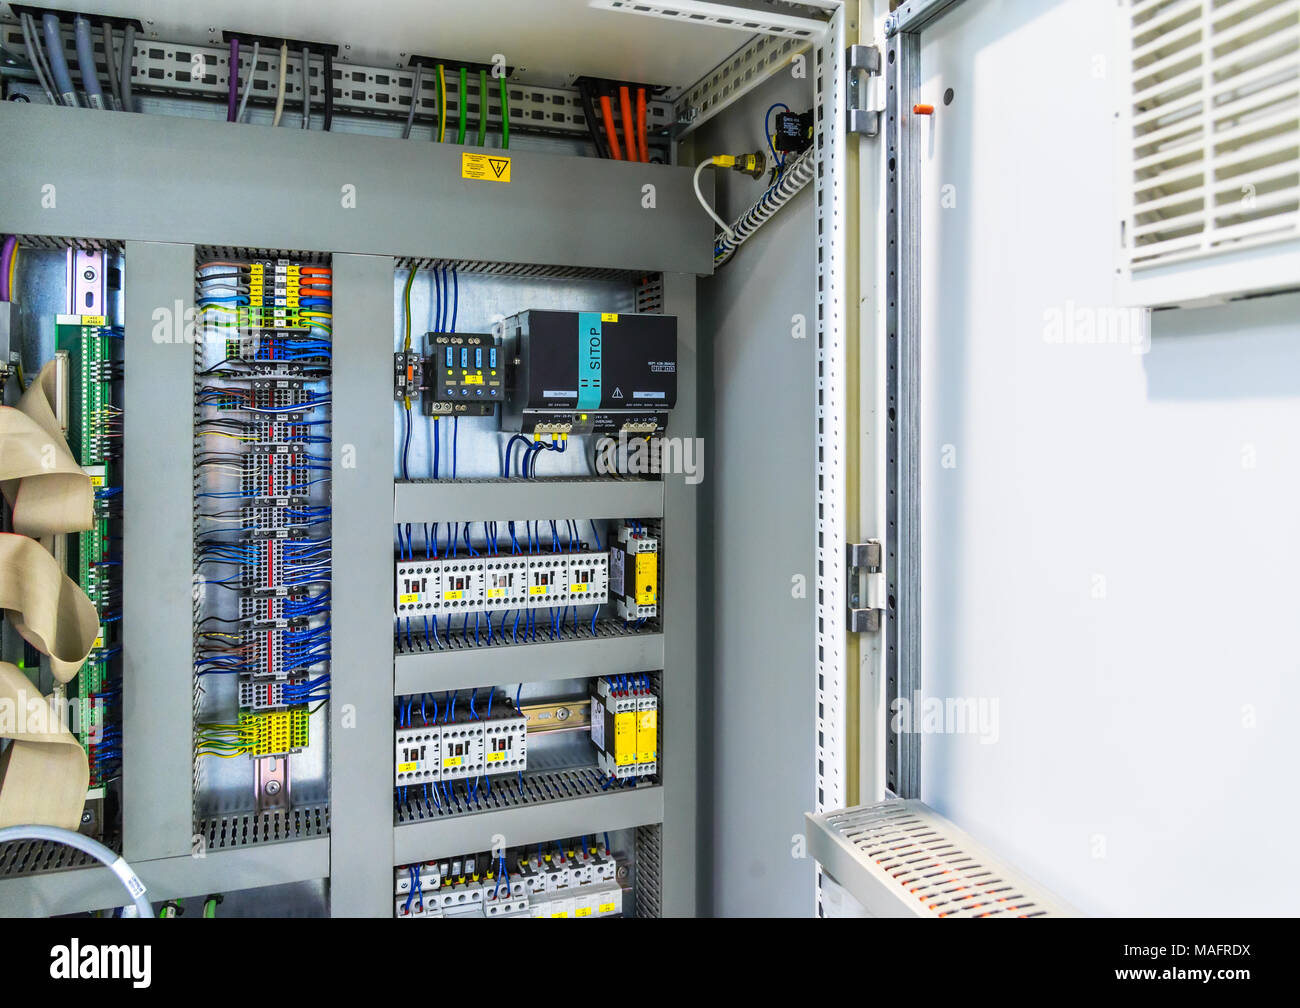 Automatic Fuse Electrical Connector In Power Lines Industrial Electric Enclosure Switch Control Panel Board Stock Photo Alamy